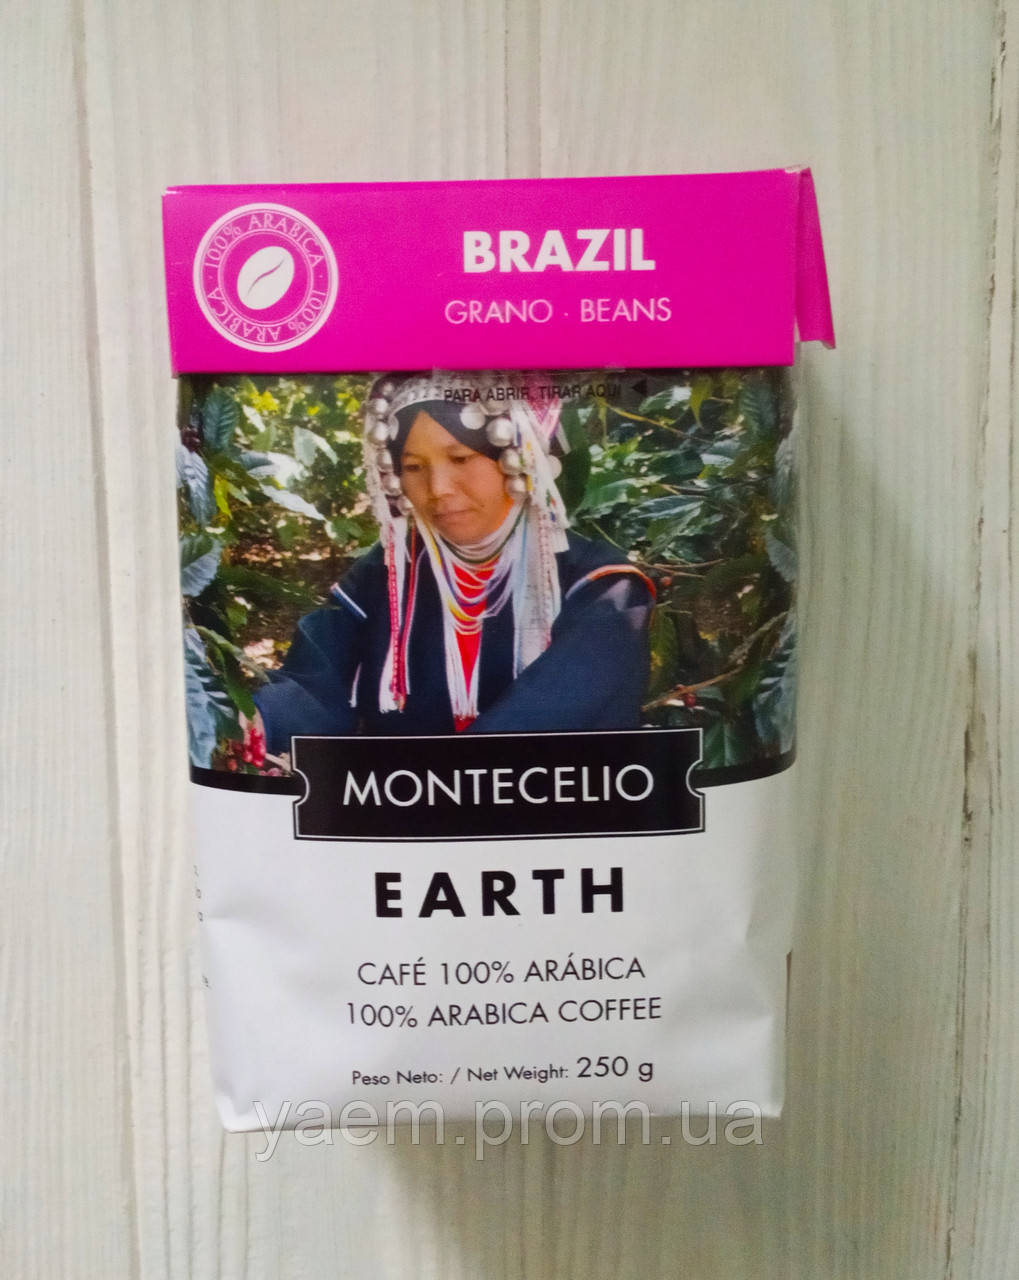 Кофе в зернах Brazil Montecelio Earth 250г (Испания)